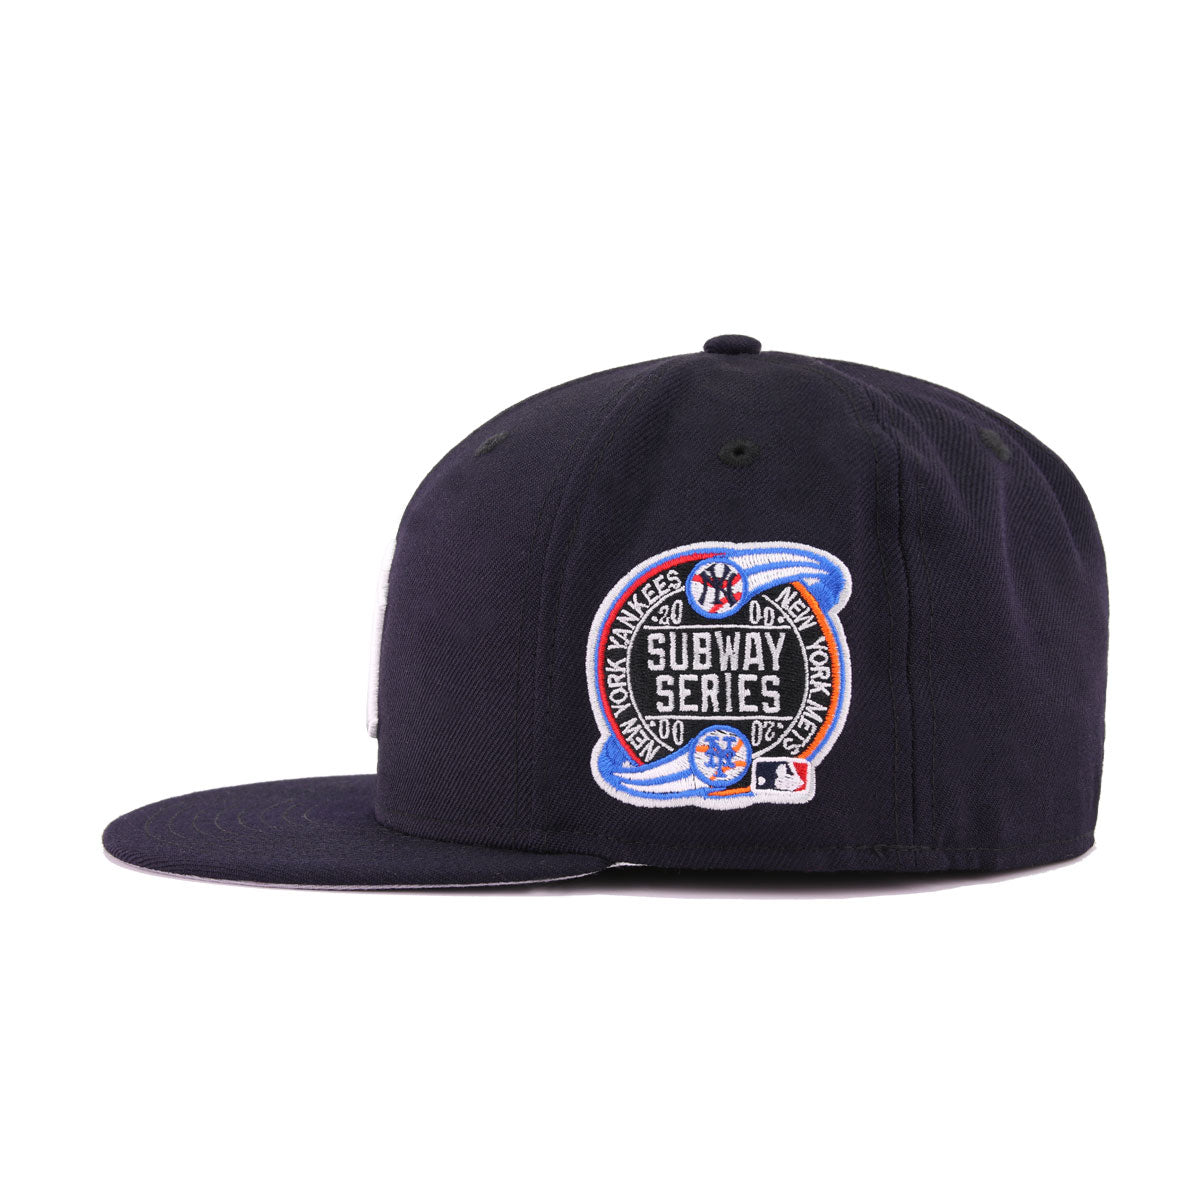 58b41b23814 New York Yankees Navy Cooperstown NY Subway Series New Era 59Fifty Fitted